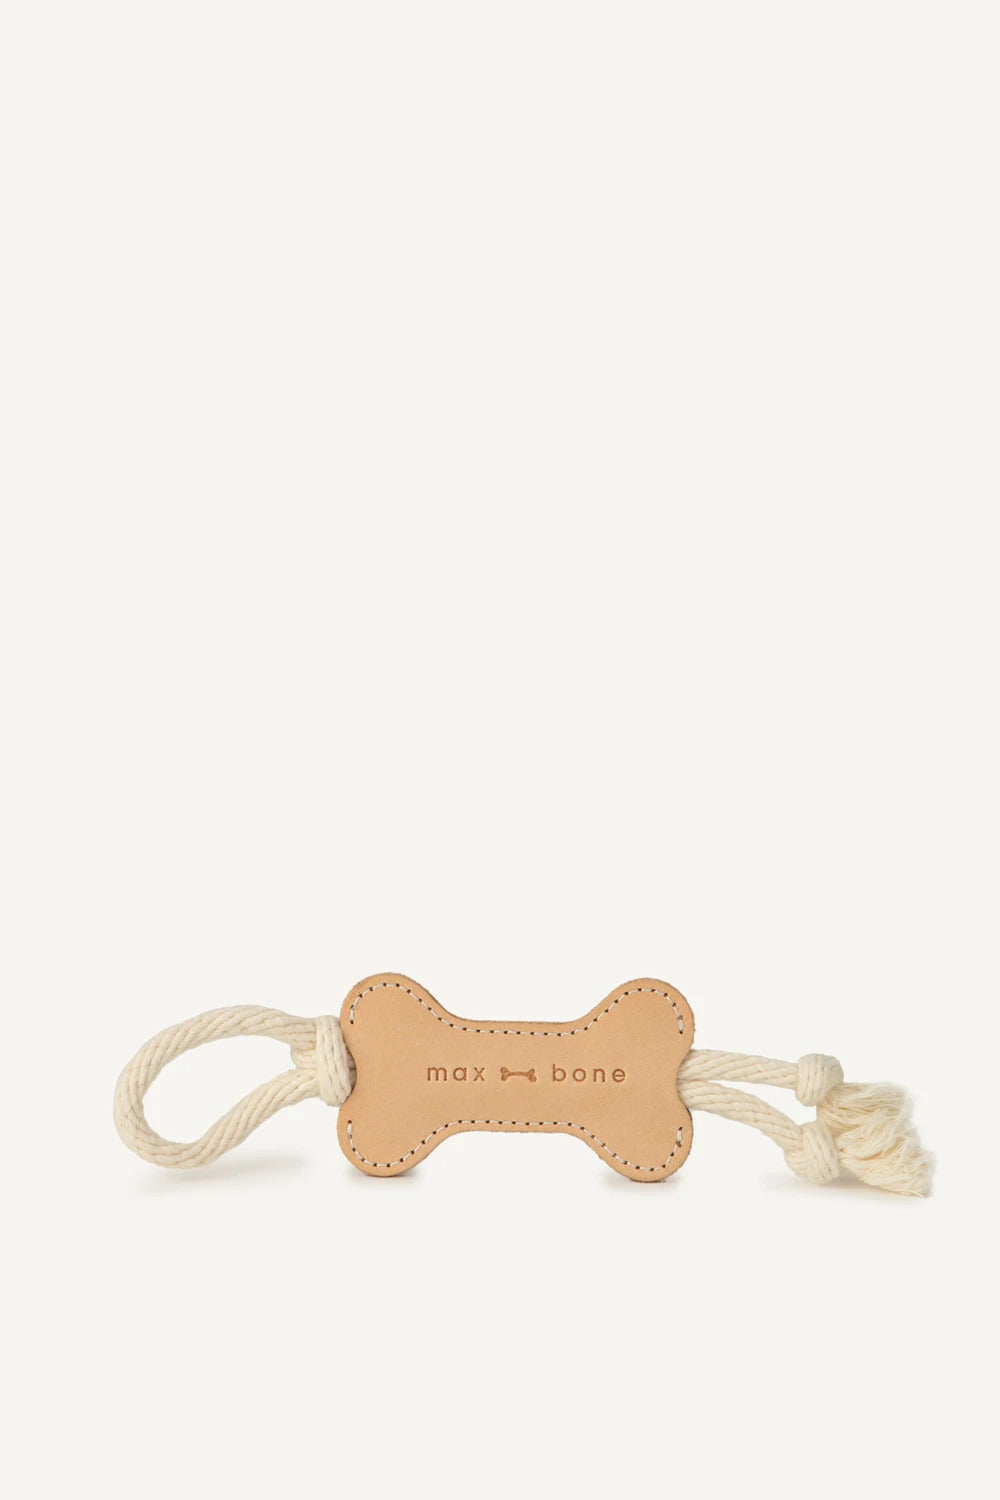 Max Bone - Leather Bone Rope Toy